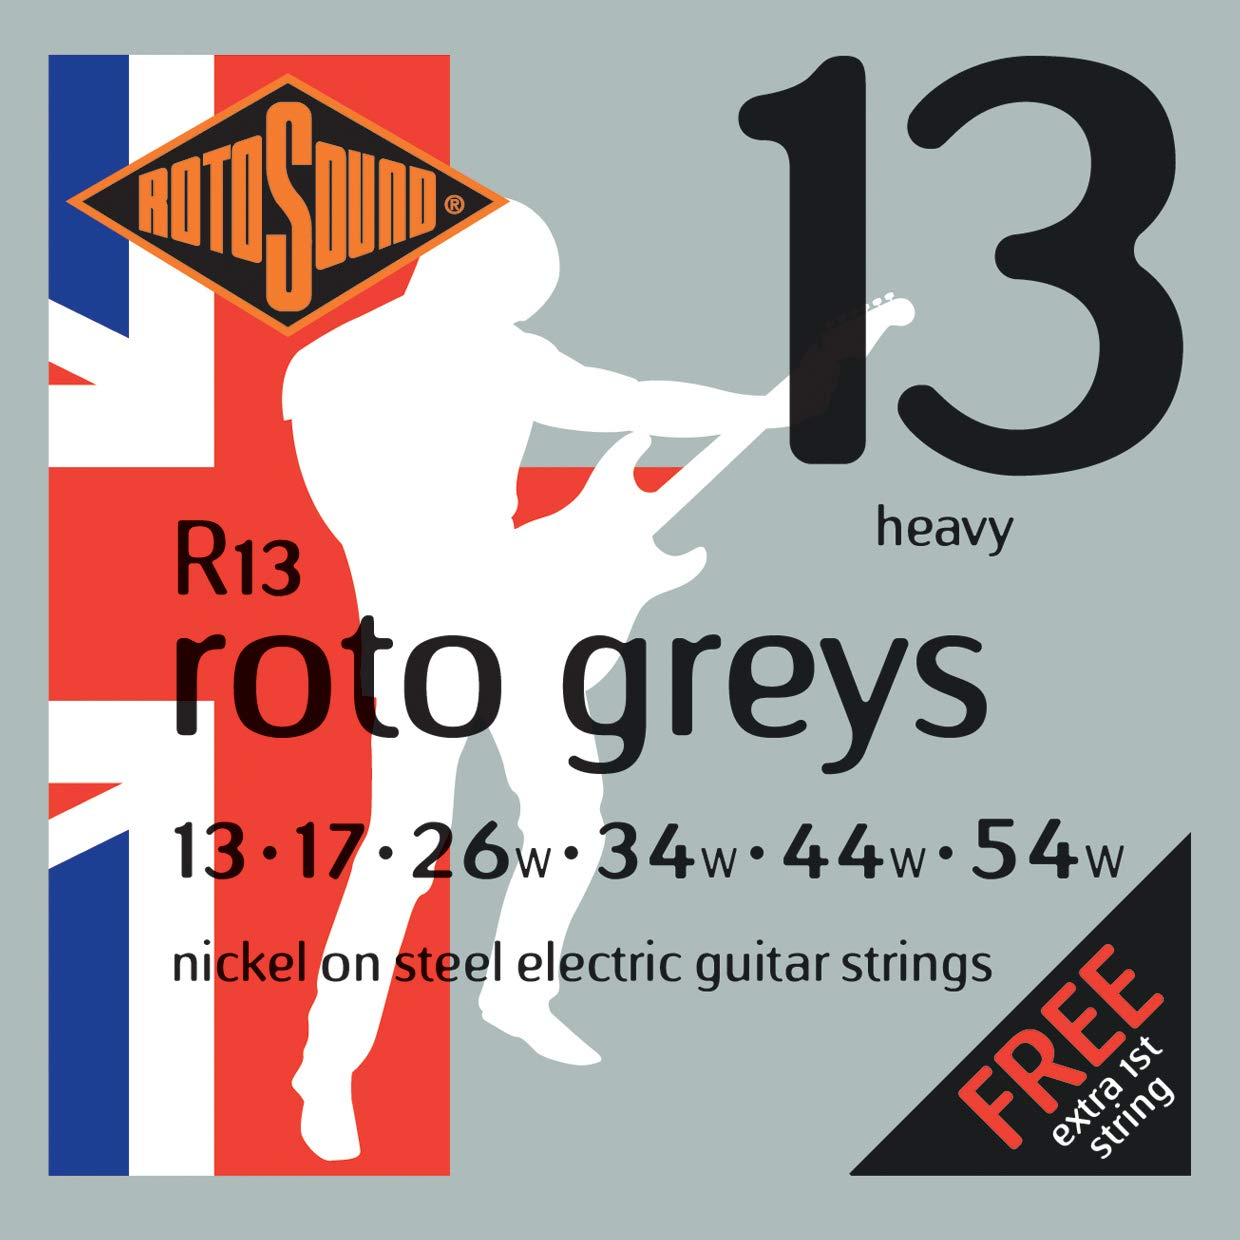 Cheap Rotosound R13 Nickel Heavy Electric Guitar Strings (13 17 26 34 44 54) Black Friday & Cyber Monday 2019